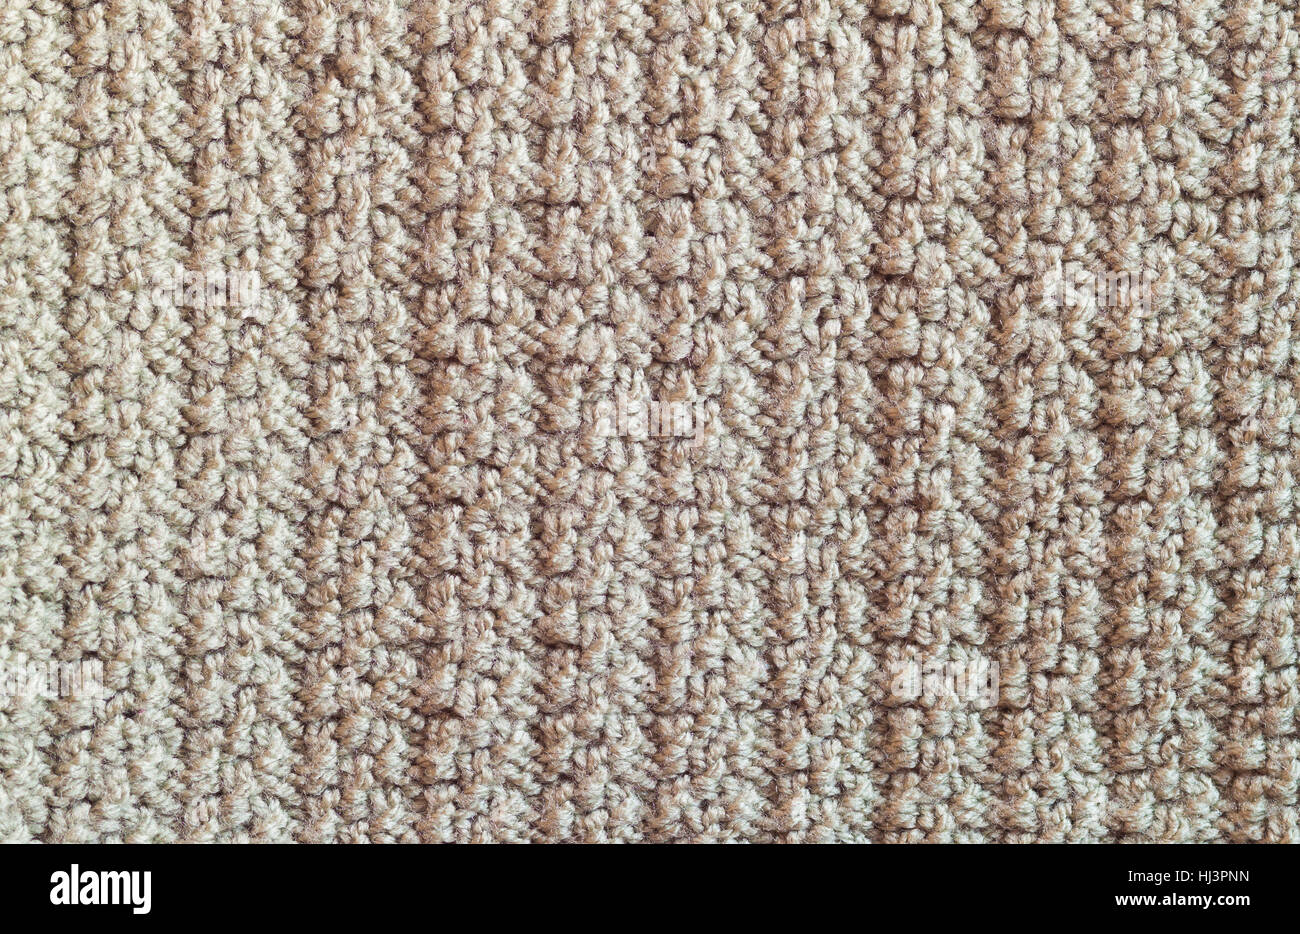 Creamy Wool Knitted Warm Clothes For The Winter Fabric